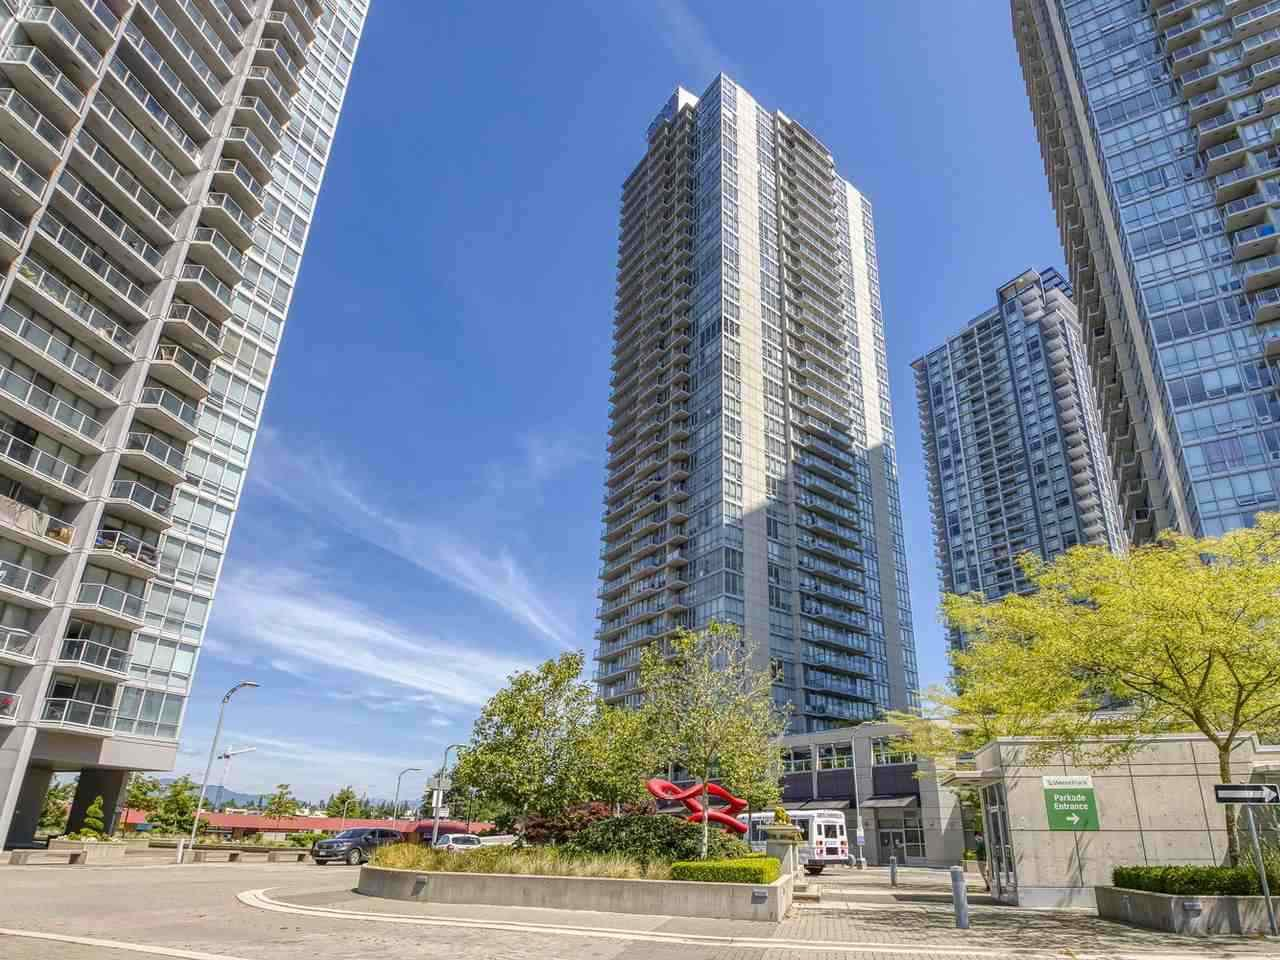 """Main Photo: 2405 13688 100 Avenue in Surrey: Whalley Condo for sale in """"Park Place One"""" (North Surrey)  : MLS®# R2498674"""